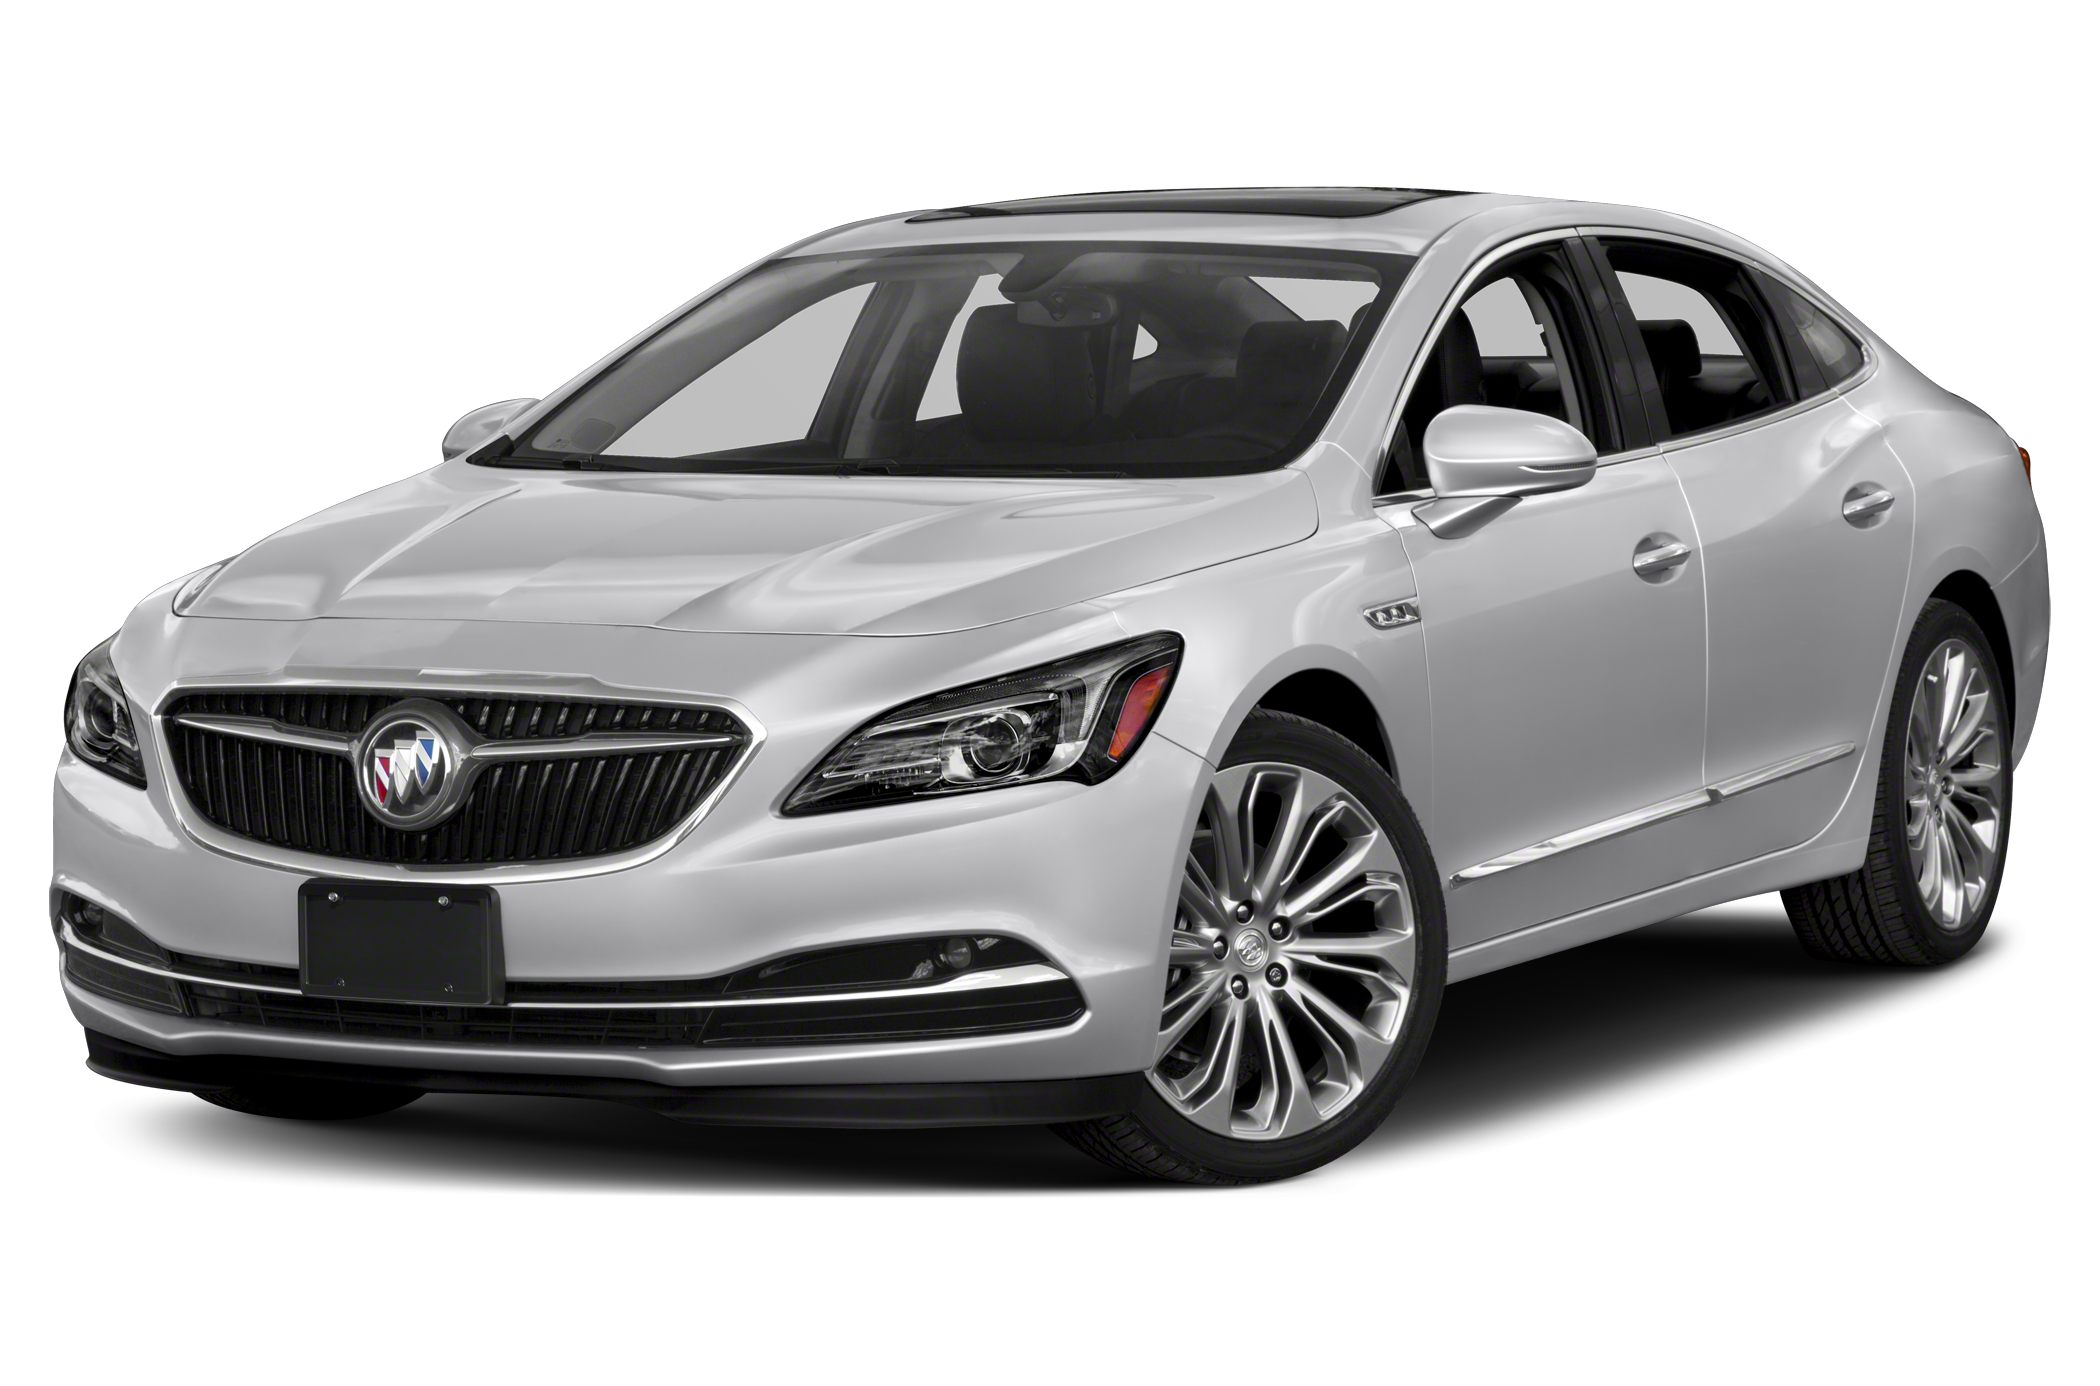 Buick Used Cars Elegant New and Used Buick Lacrosse In Rapid City Sd